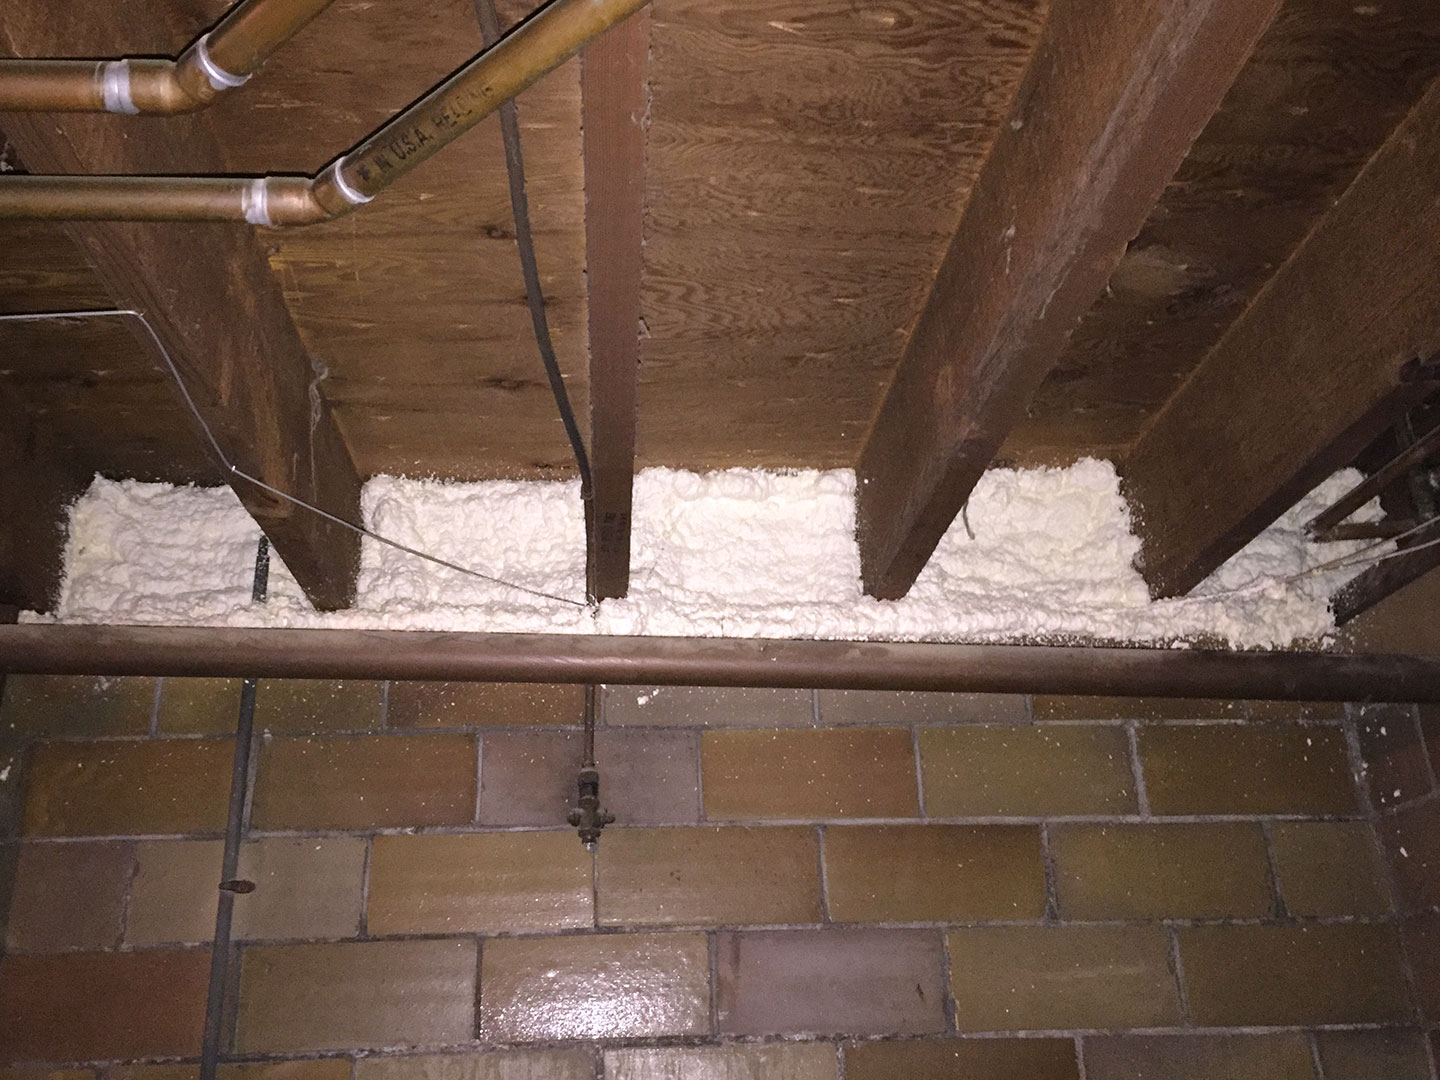 The rim joist is a large source of energy loss. The rim joist is the edge of the wood floor framing system that sits on top of the homes foundation walls. Spray foam air seals and insulates the rim joist making it the best material for insulating this area.